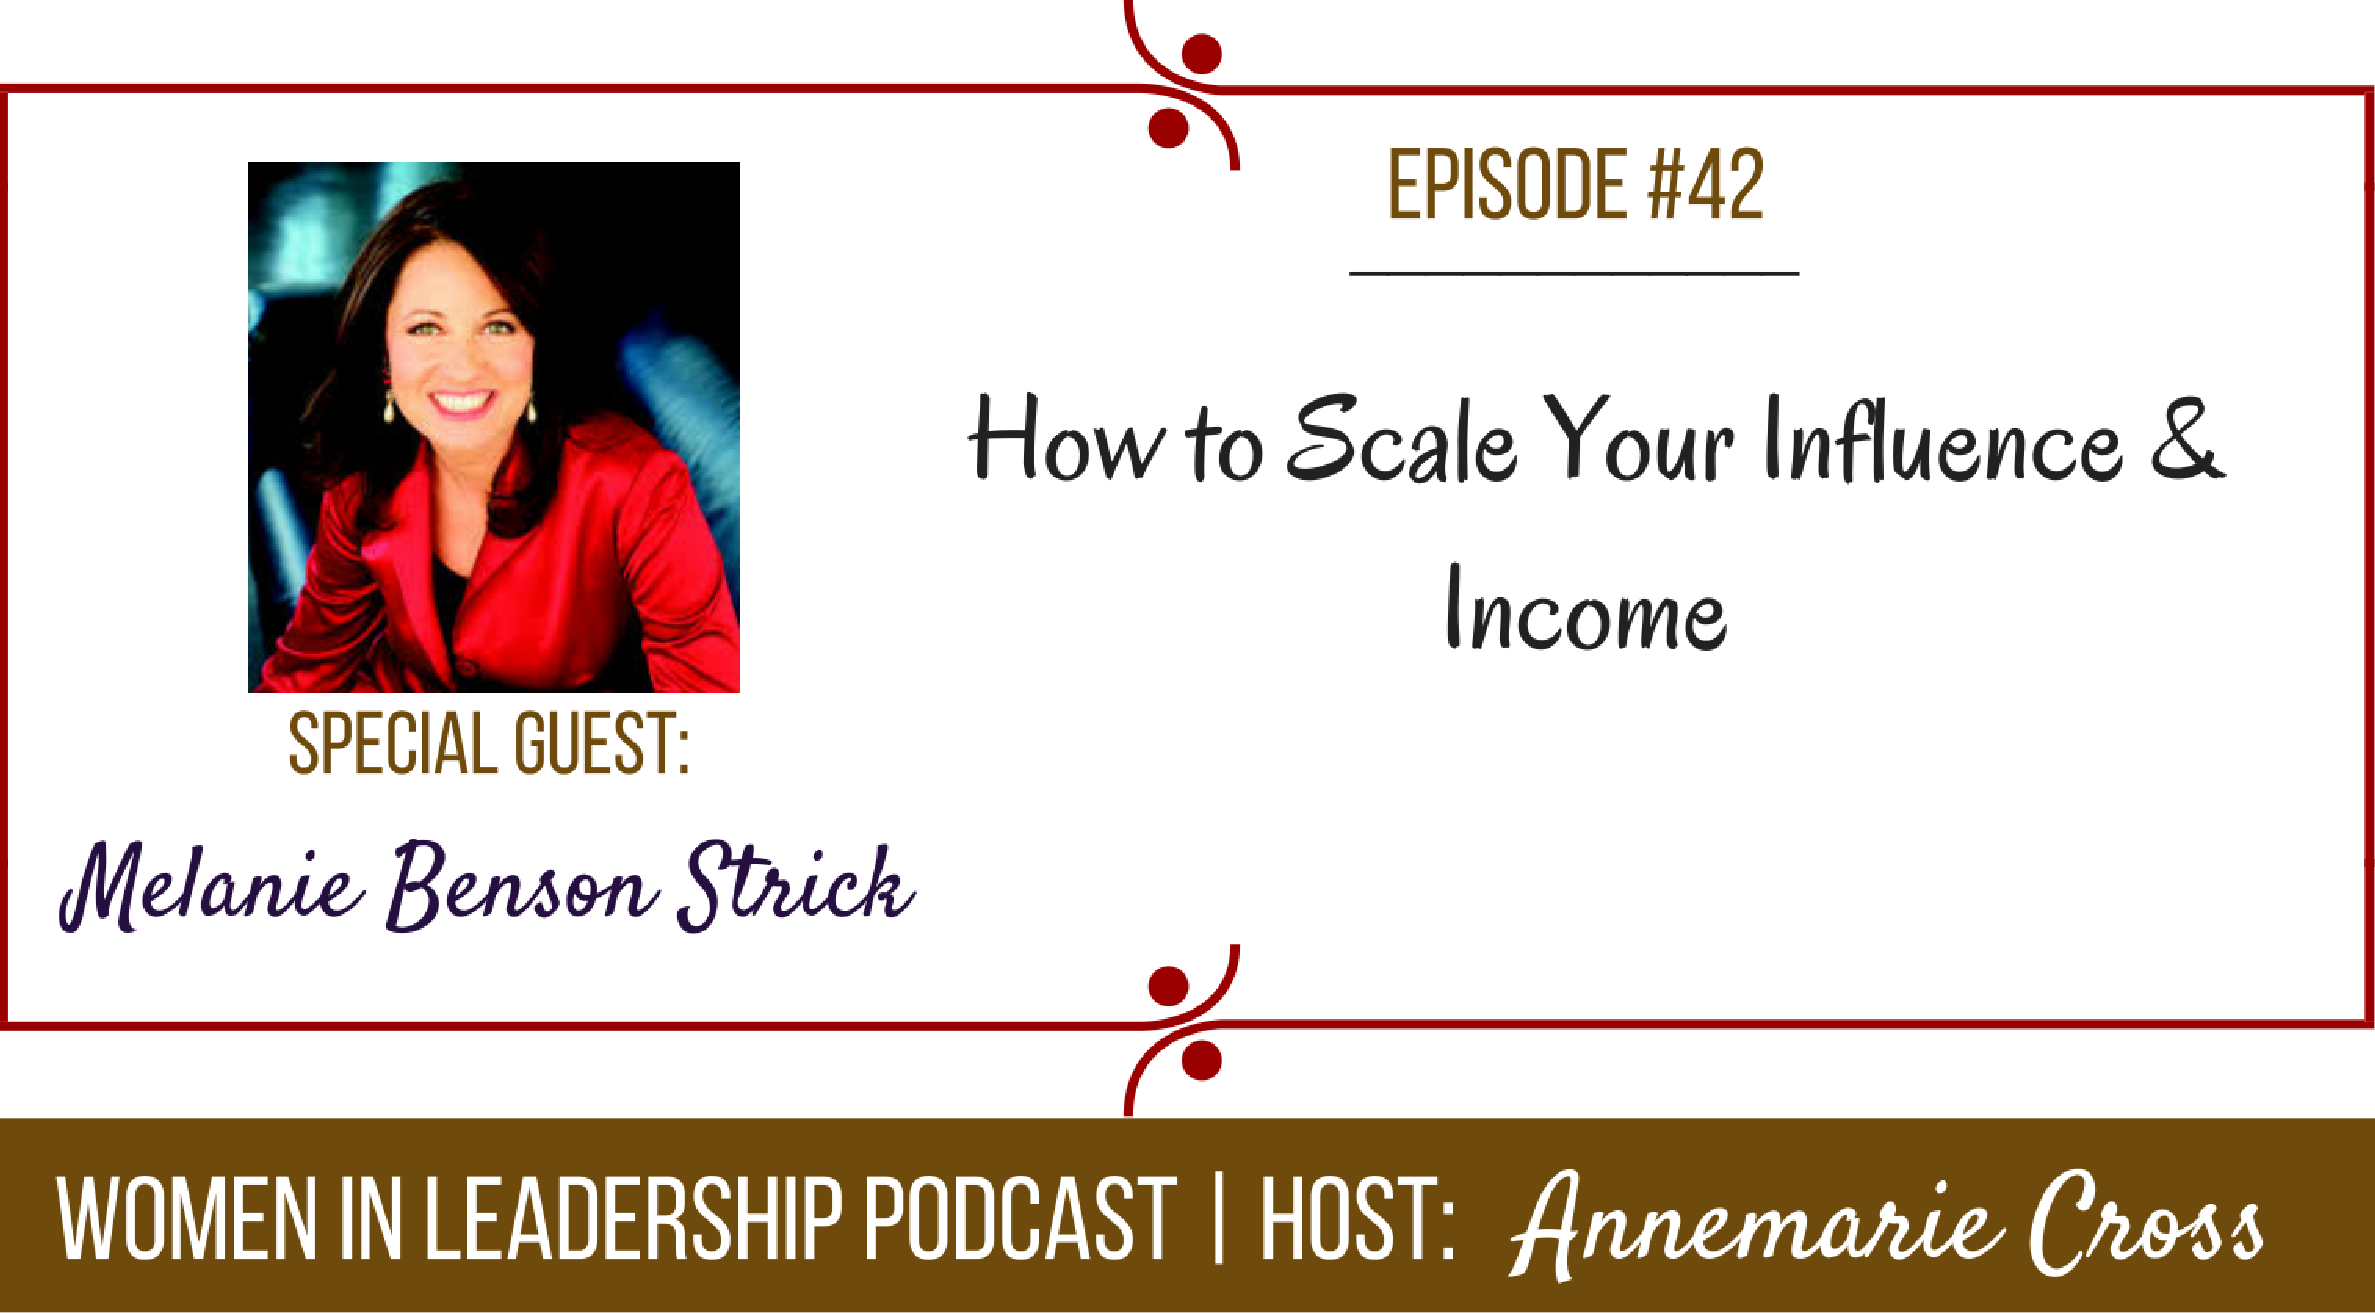 [Ep#42] How to Scale Your Influence & Income [podcast]